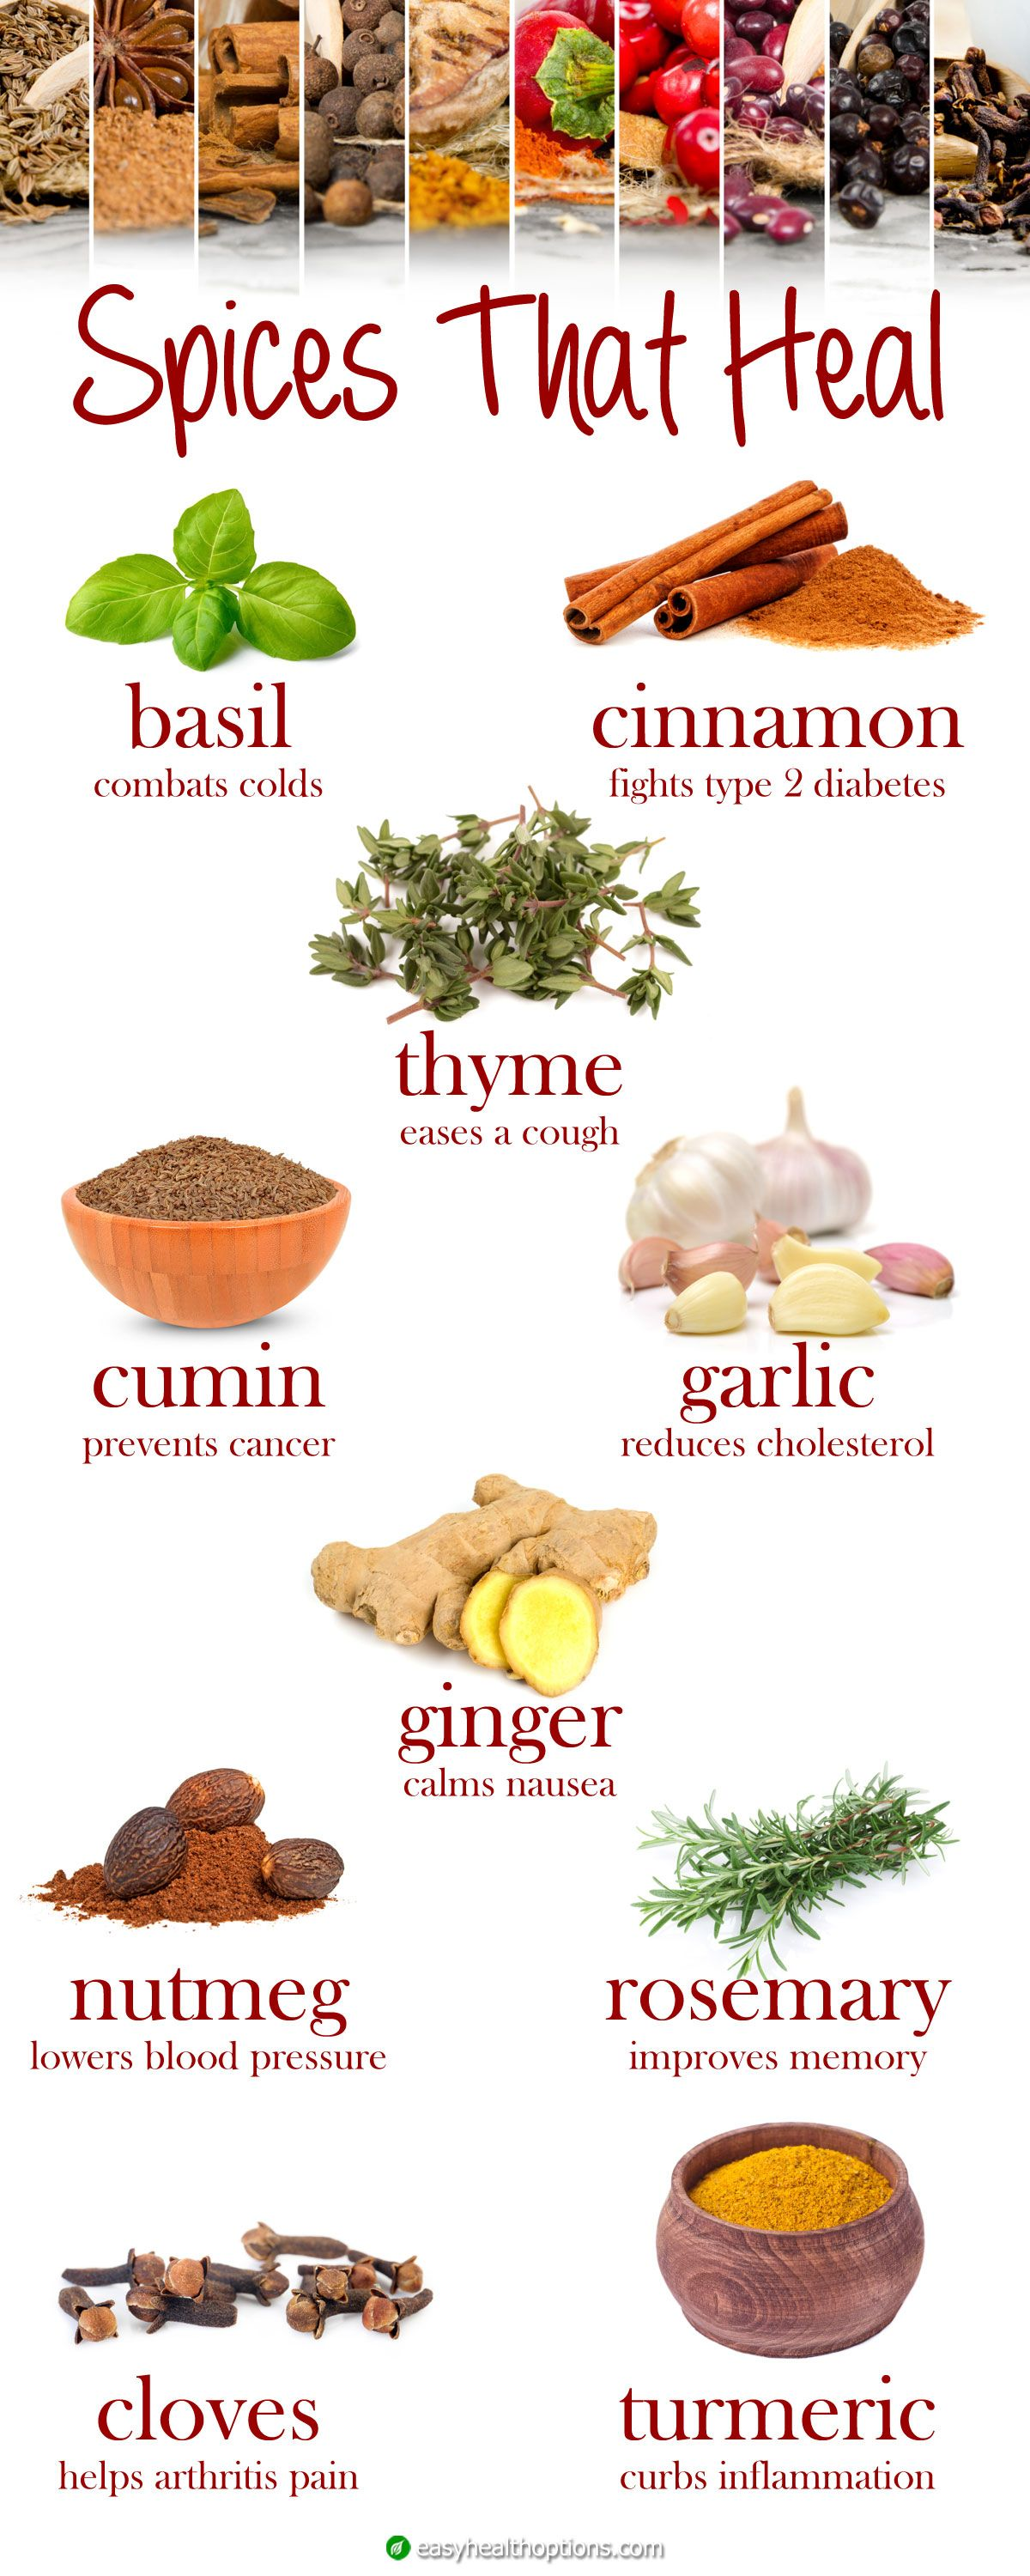 Spices can go a long way towards boosting your health So why not shake it up